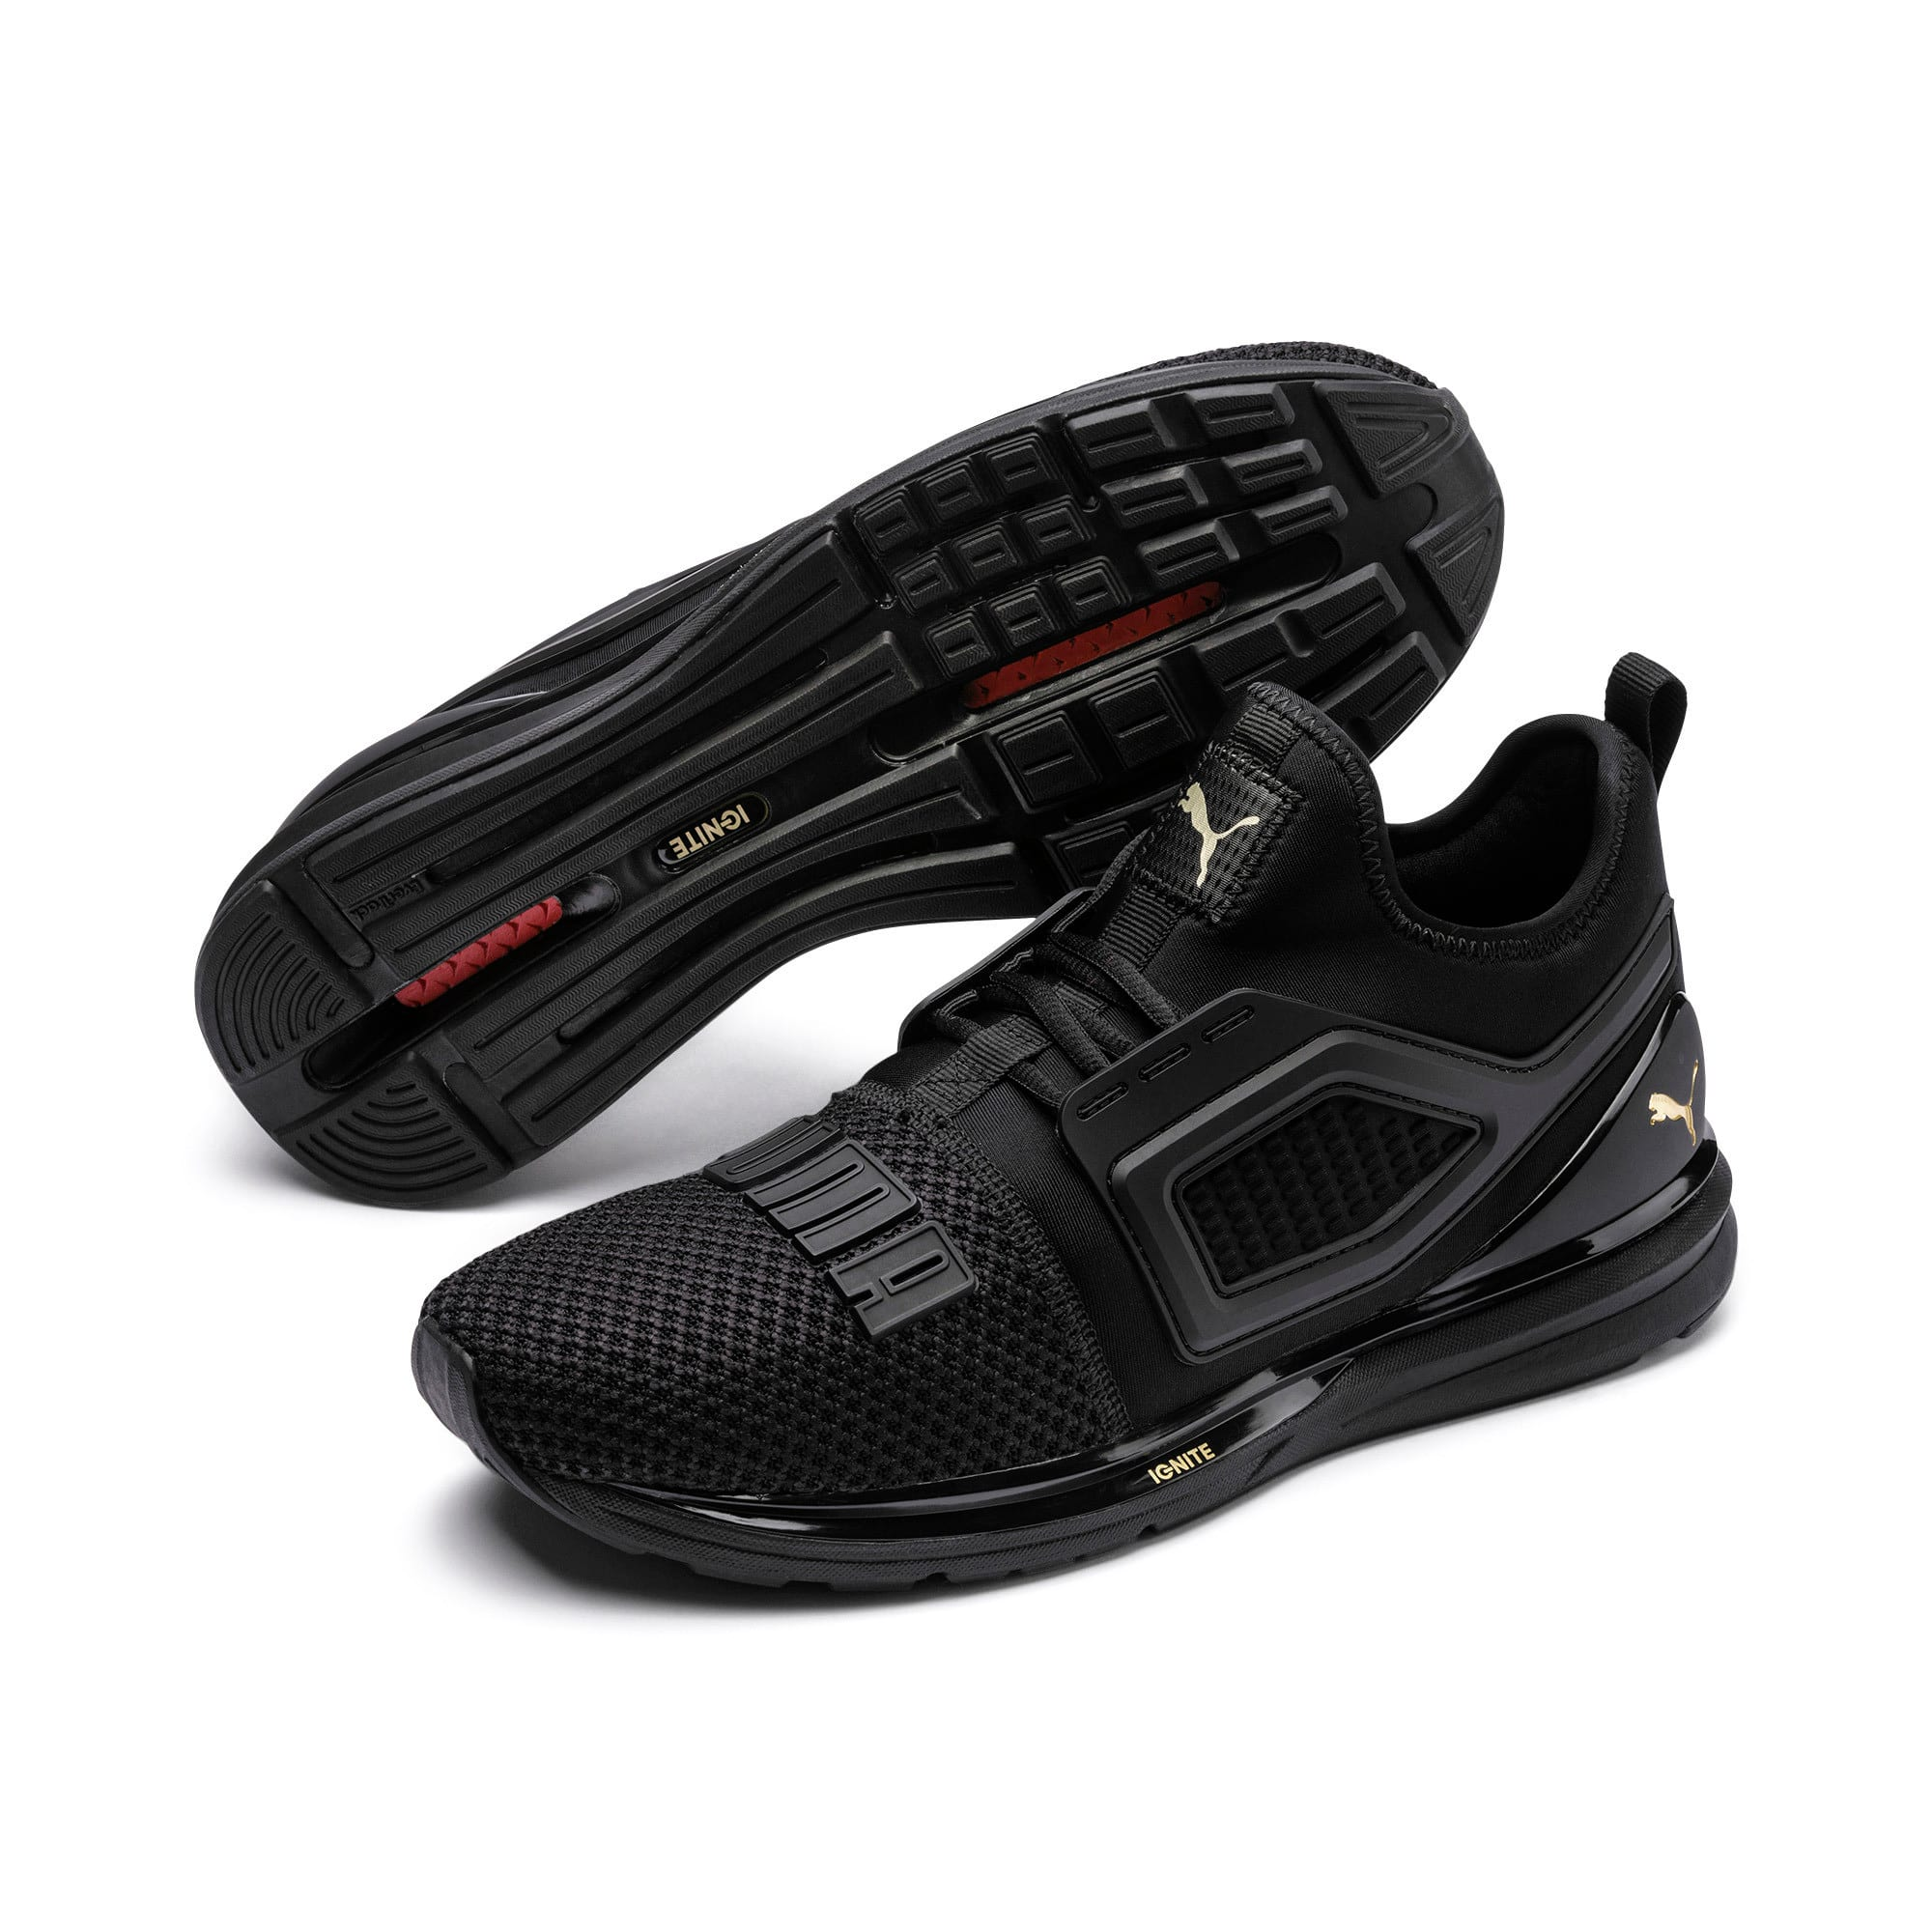 reputable site 26d4c def89 IGNITE Limitless 2 Running Shoes